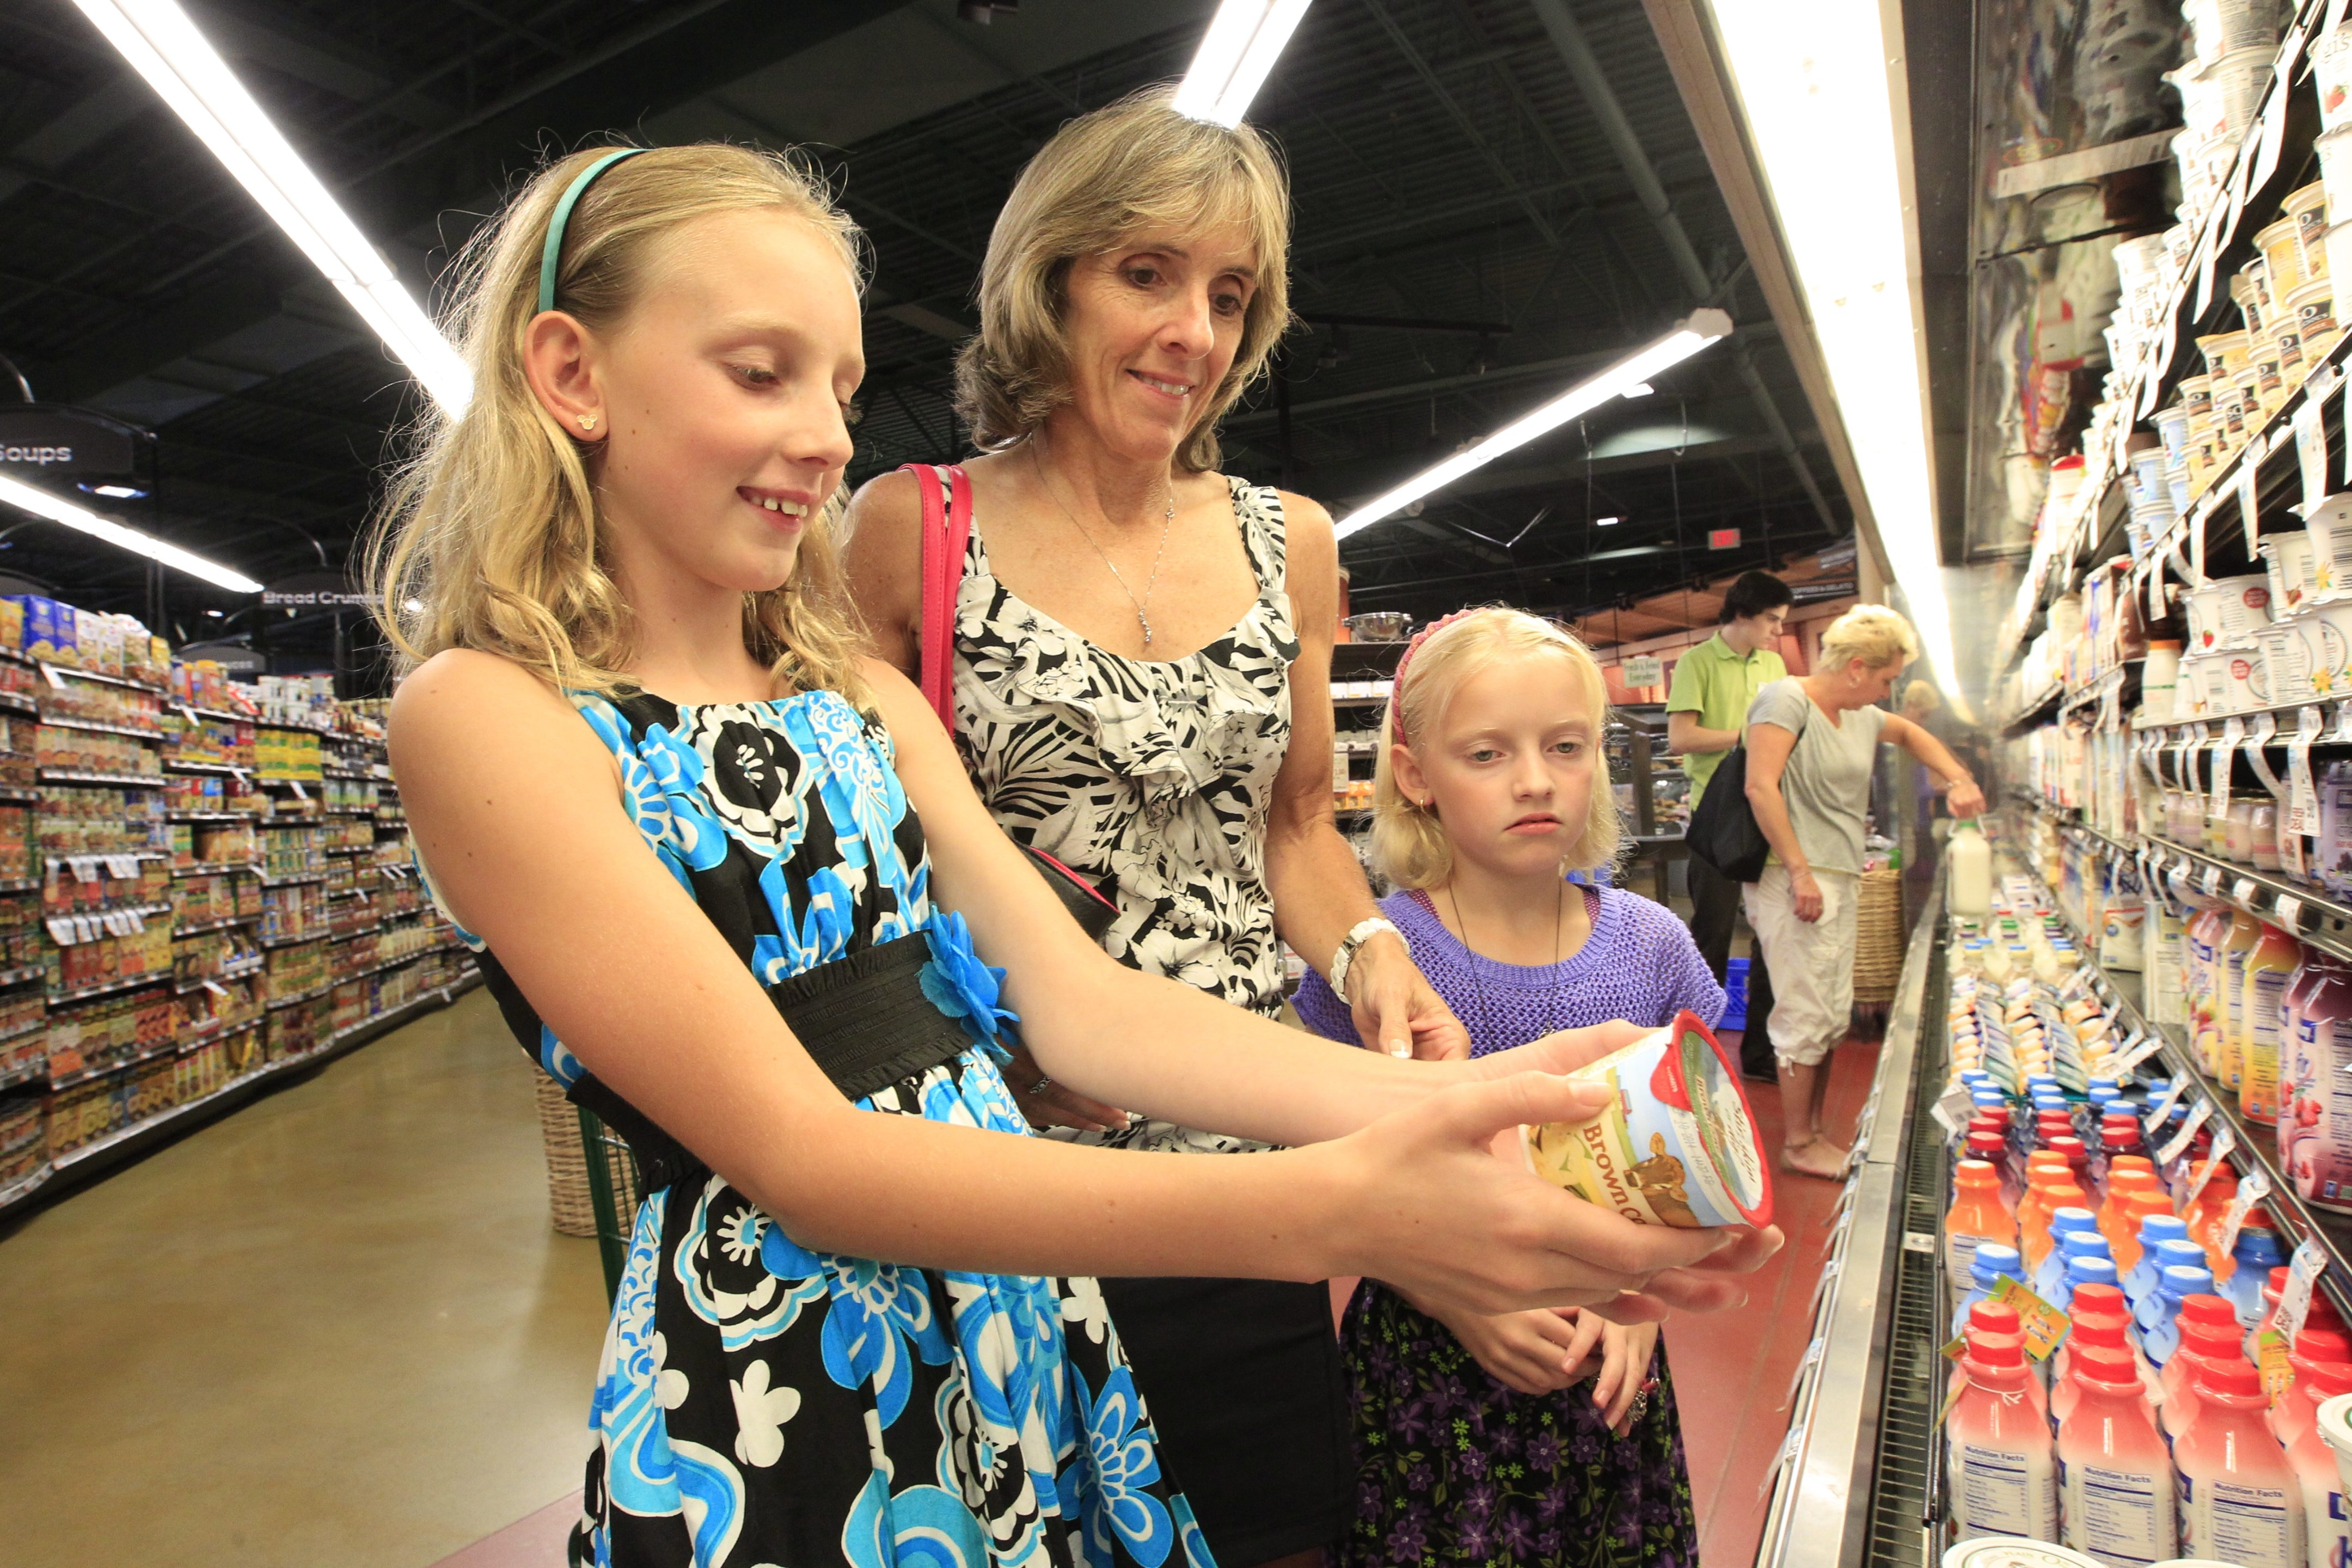 Carol DeNysschen, a registered dietitian, shops with her children Ashley, 10, and Jenna 8, for healthy back-to-school snacks at Orchard Fresh in Orchard Park on Aug. 26.